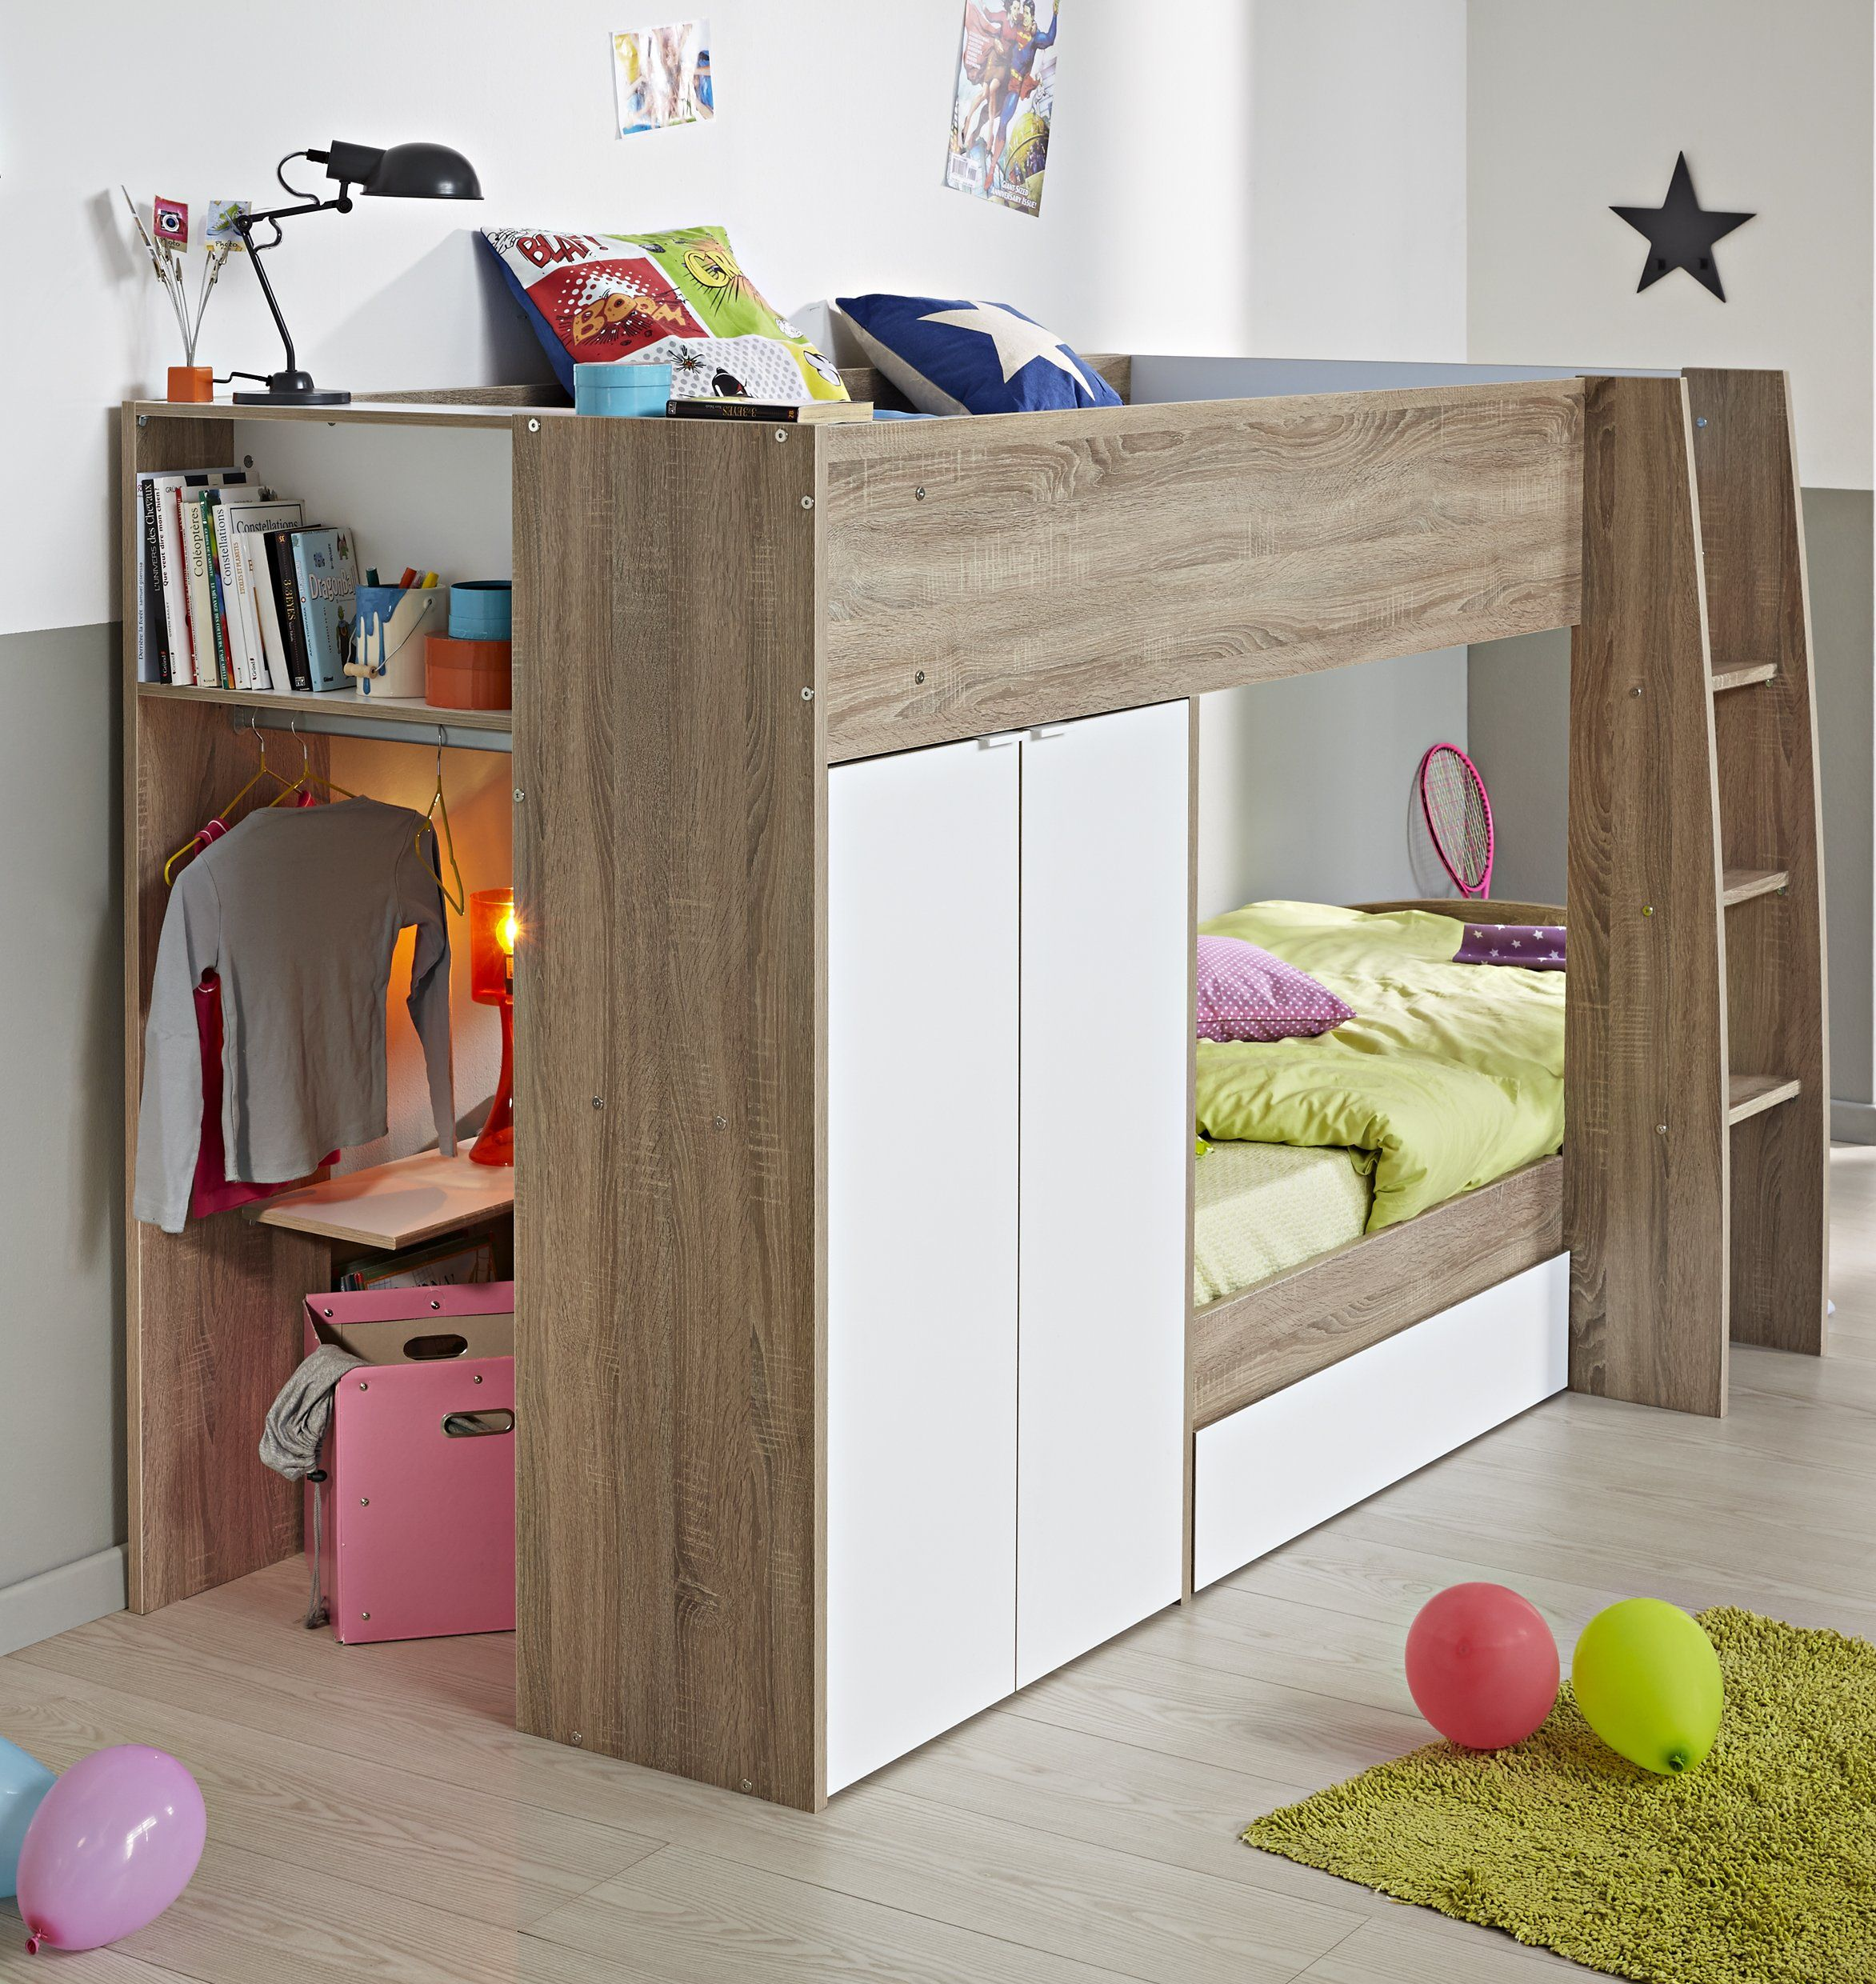 Pictures For Kids Bedrooms Cool Kids Bedroom Bedrooms | kids room ...